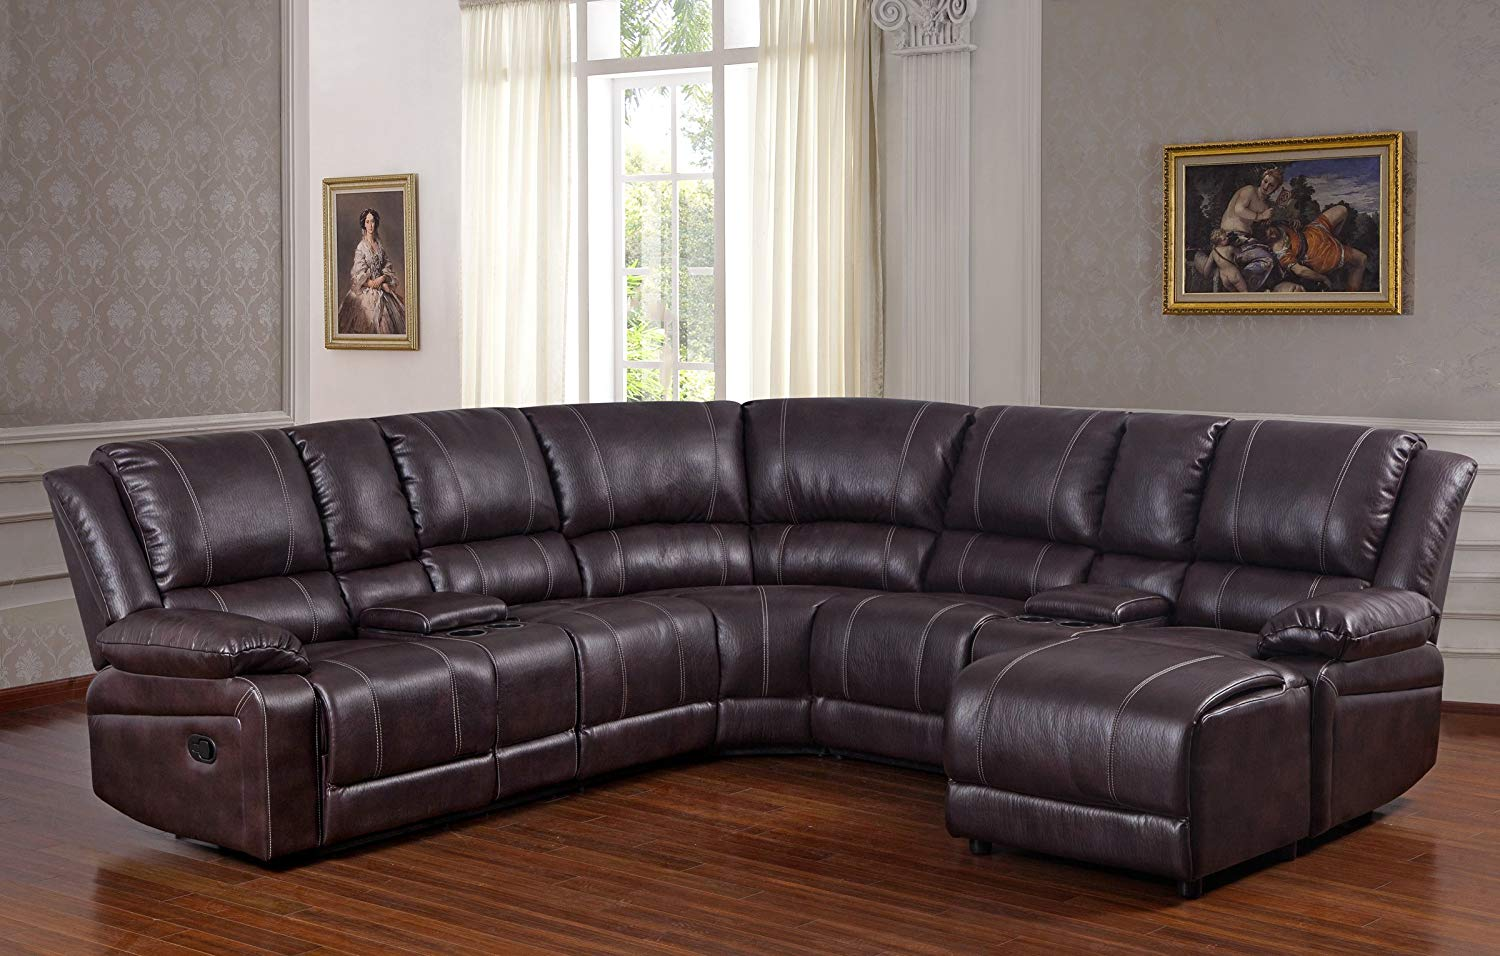 bubble leather brown sectional sofa with recliner chaise console w cup holders